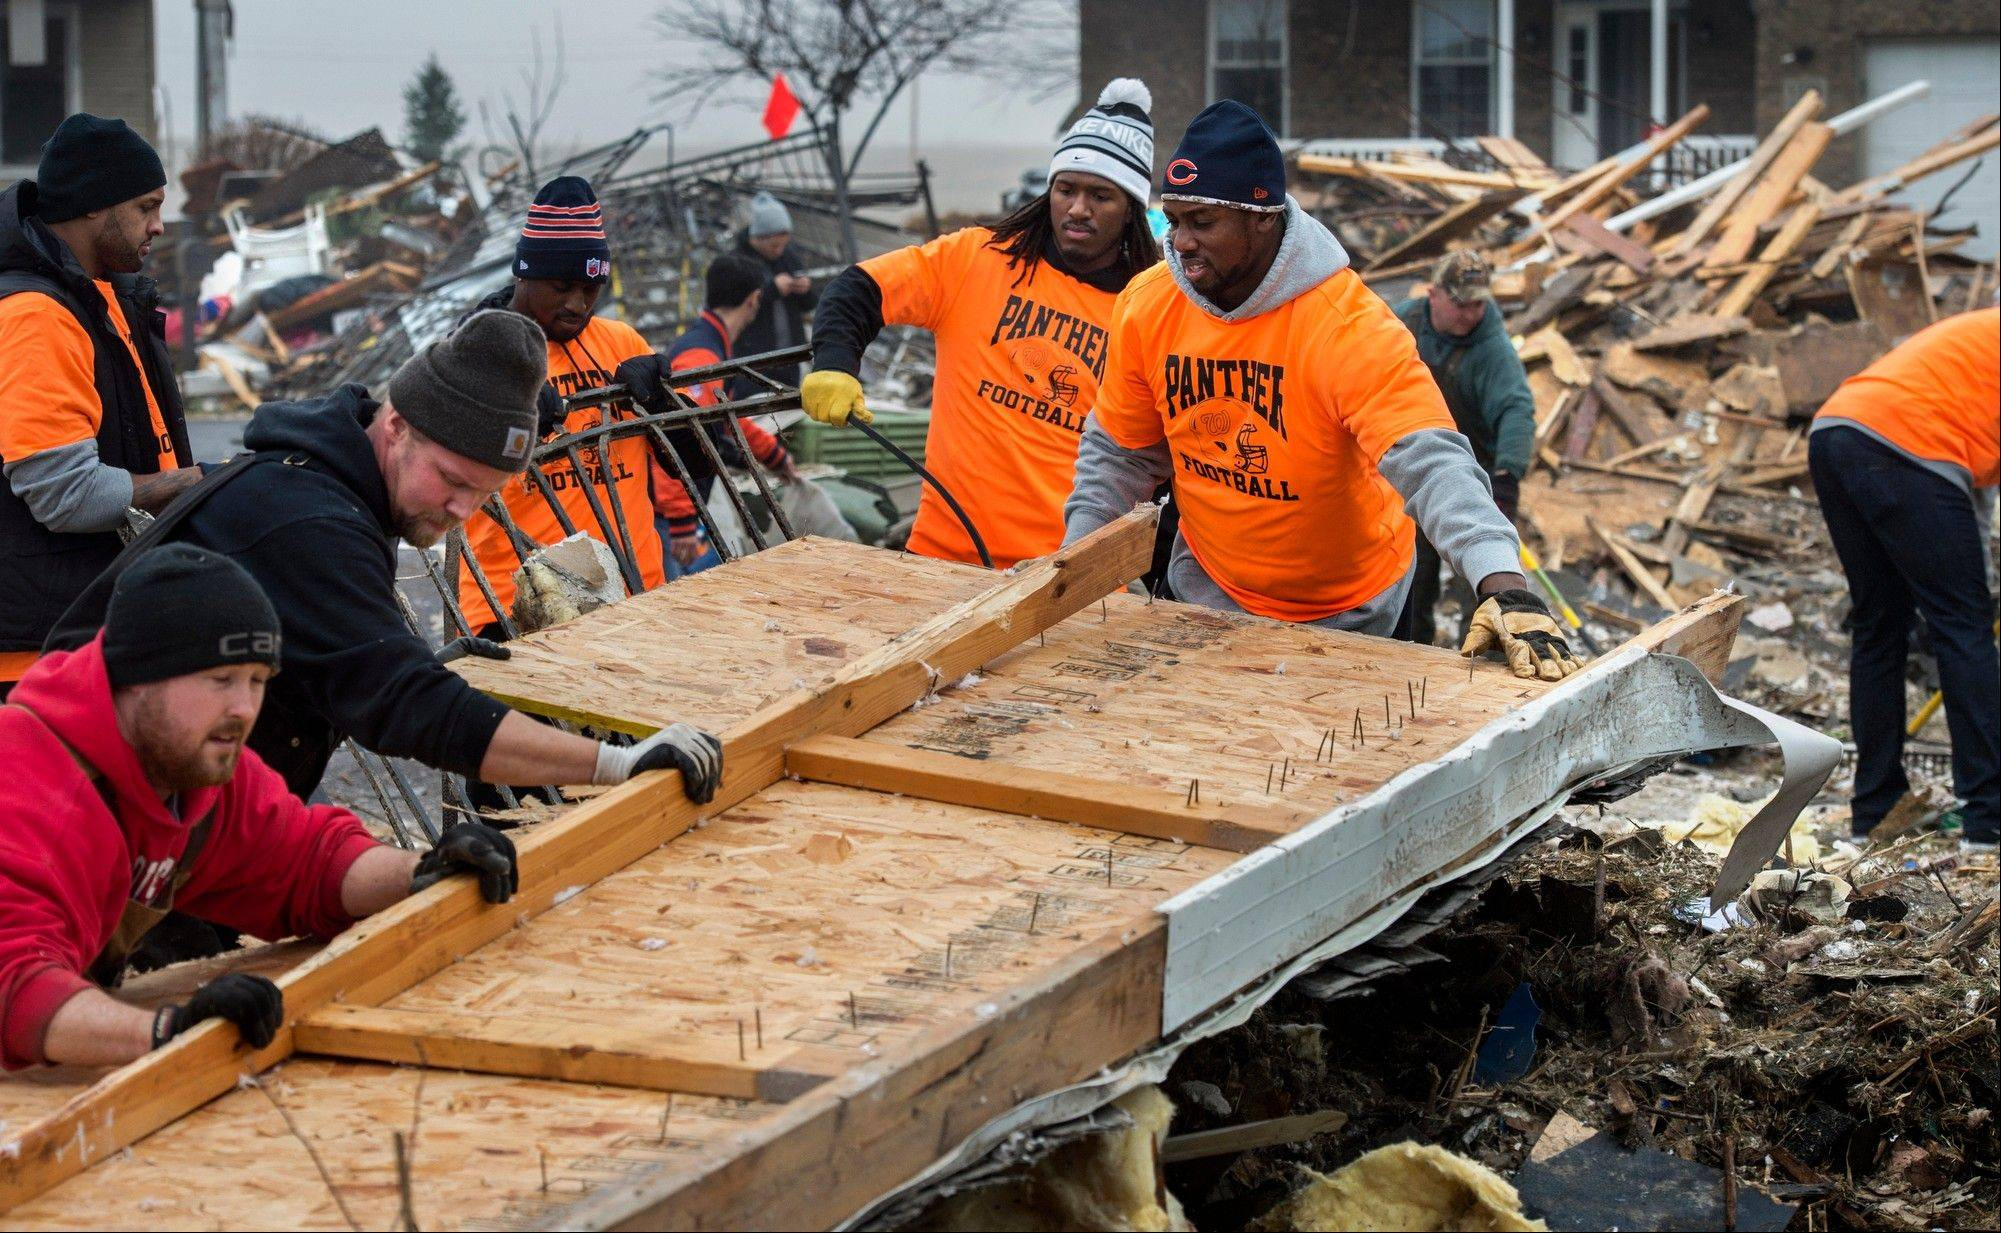 Defensive end Cheta Ozougwu, center right, along with other members of the Bears clear debris Wednesday along Dorchester Court in Washington, Ill.